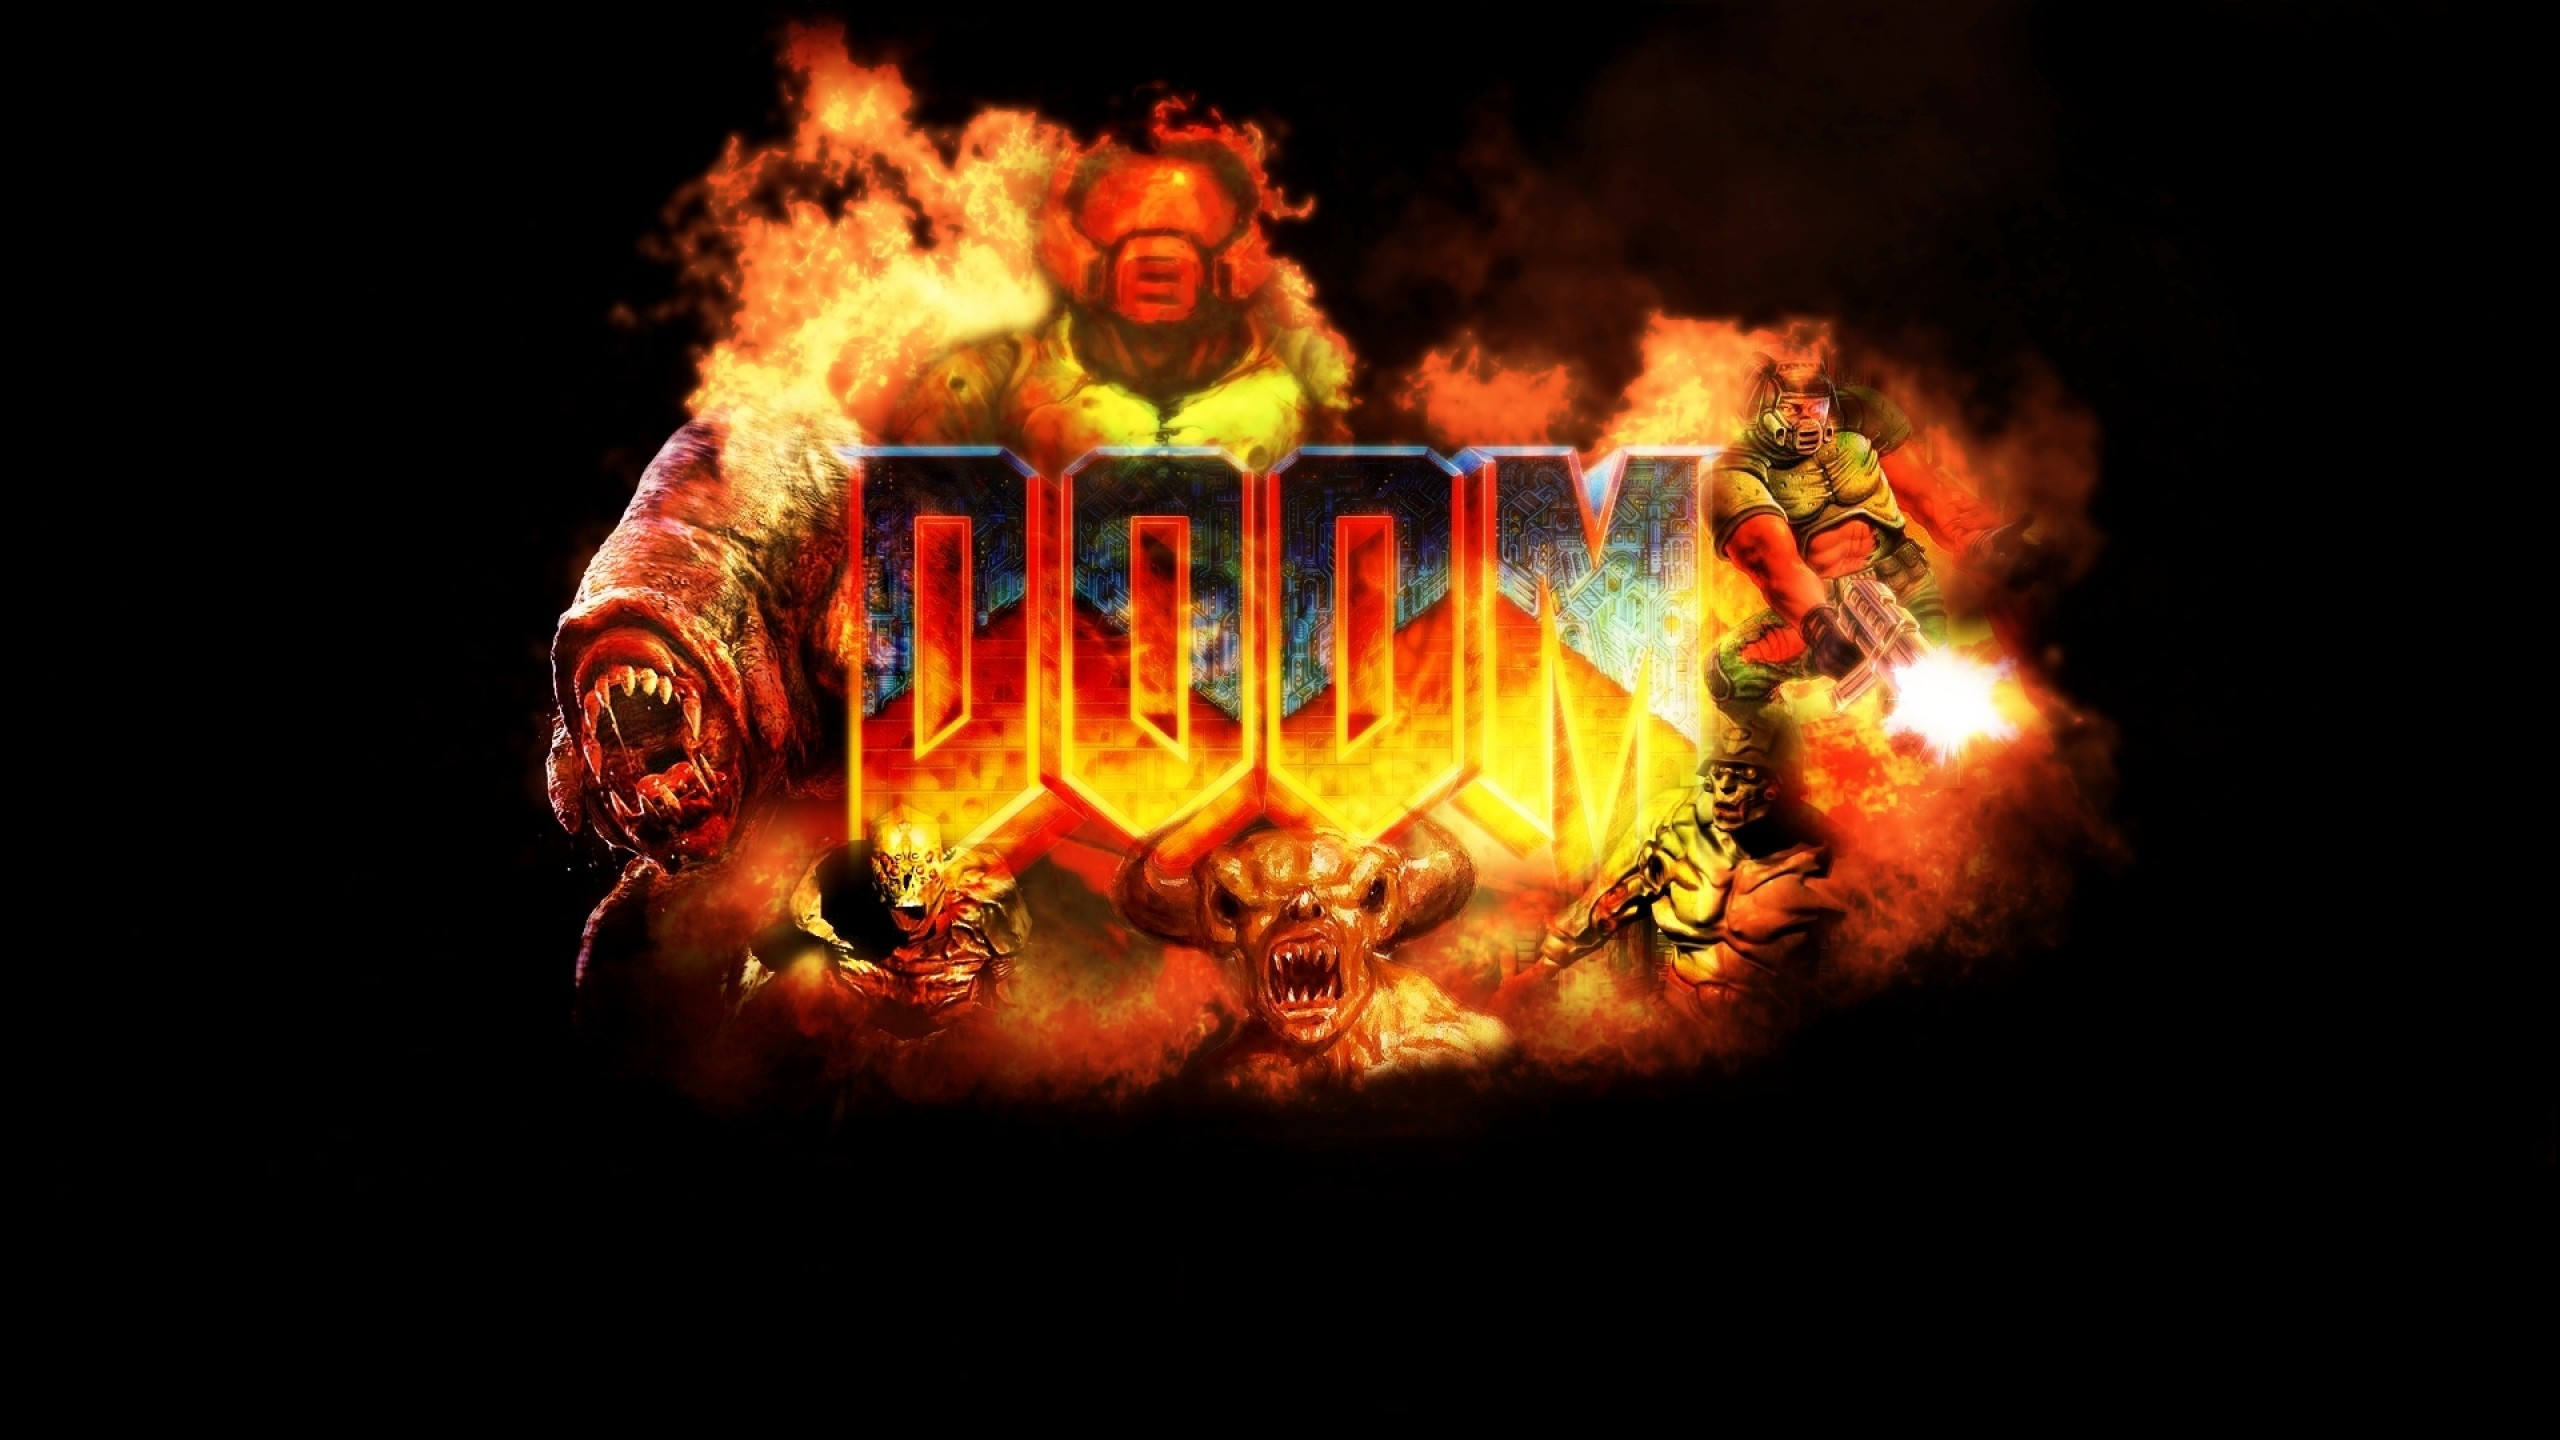 2560x1440  Wallpaper doom, game, logo, explosion, fire